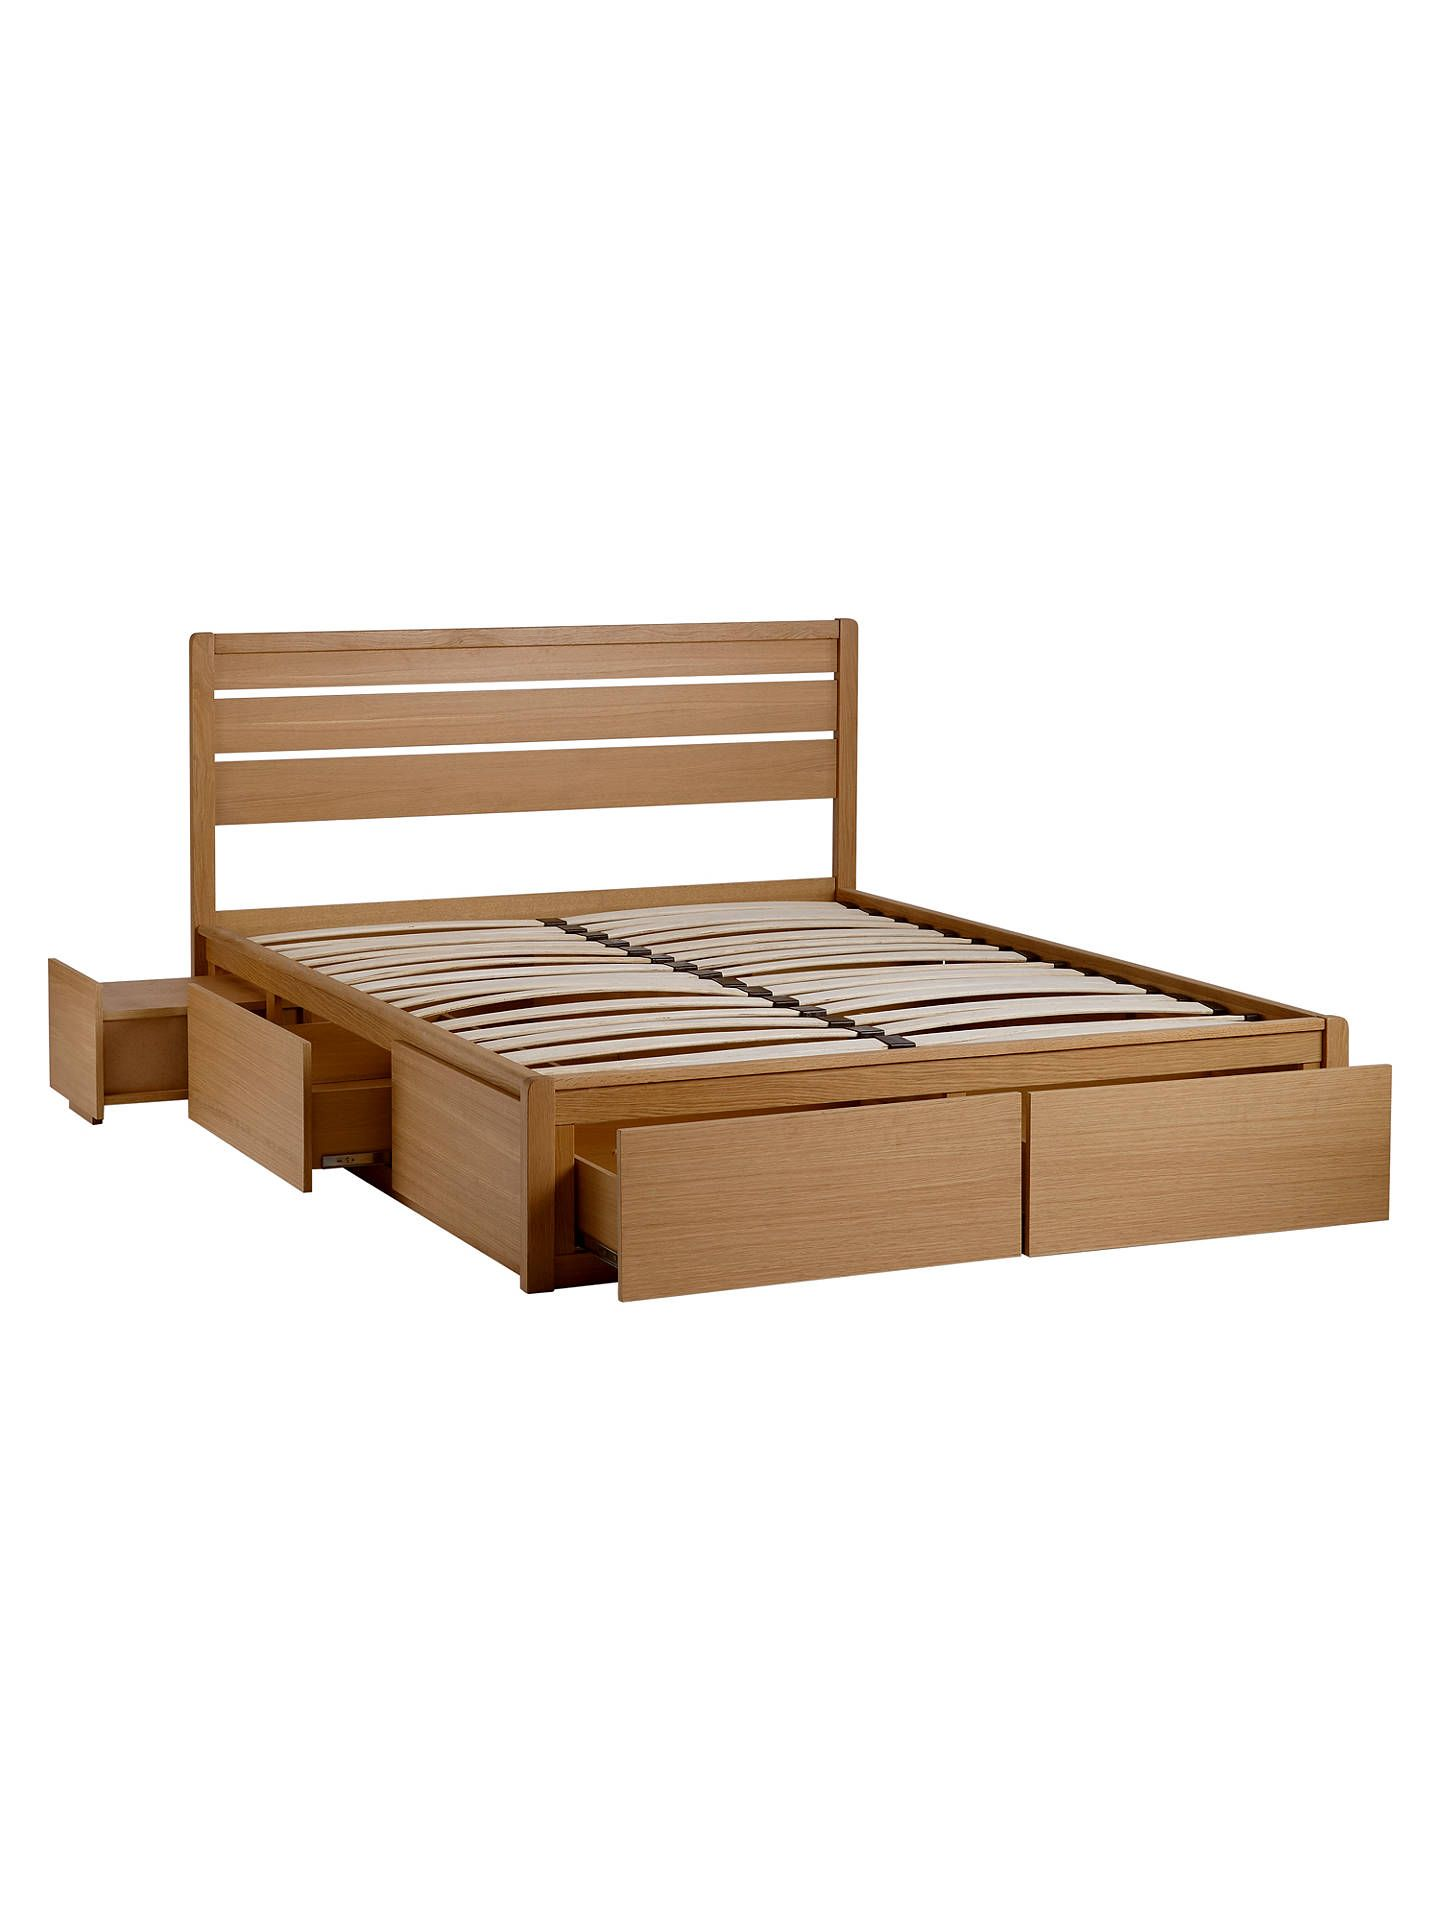 john lewis partners montreal storage bed double oak on innovative ideas for useful beds with storages how to declutter your bedroom id=63625